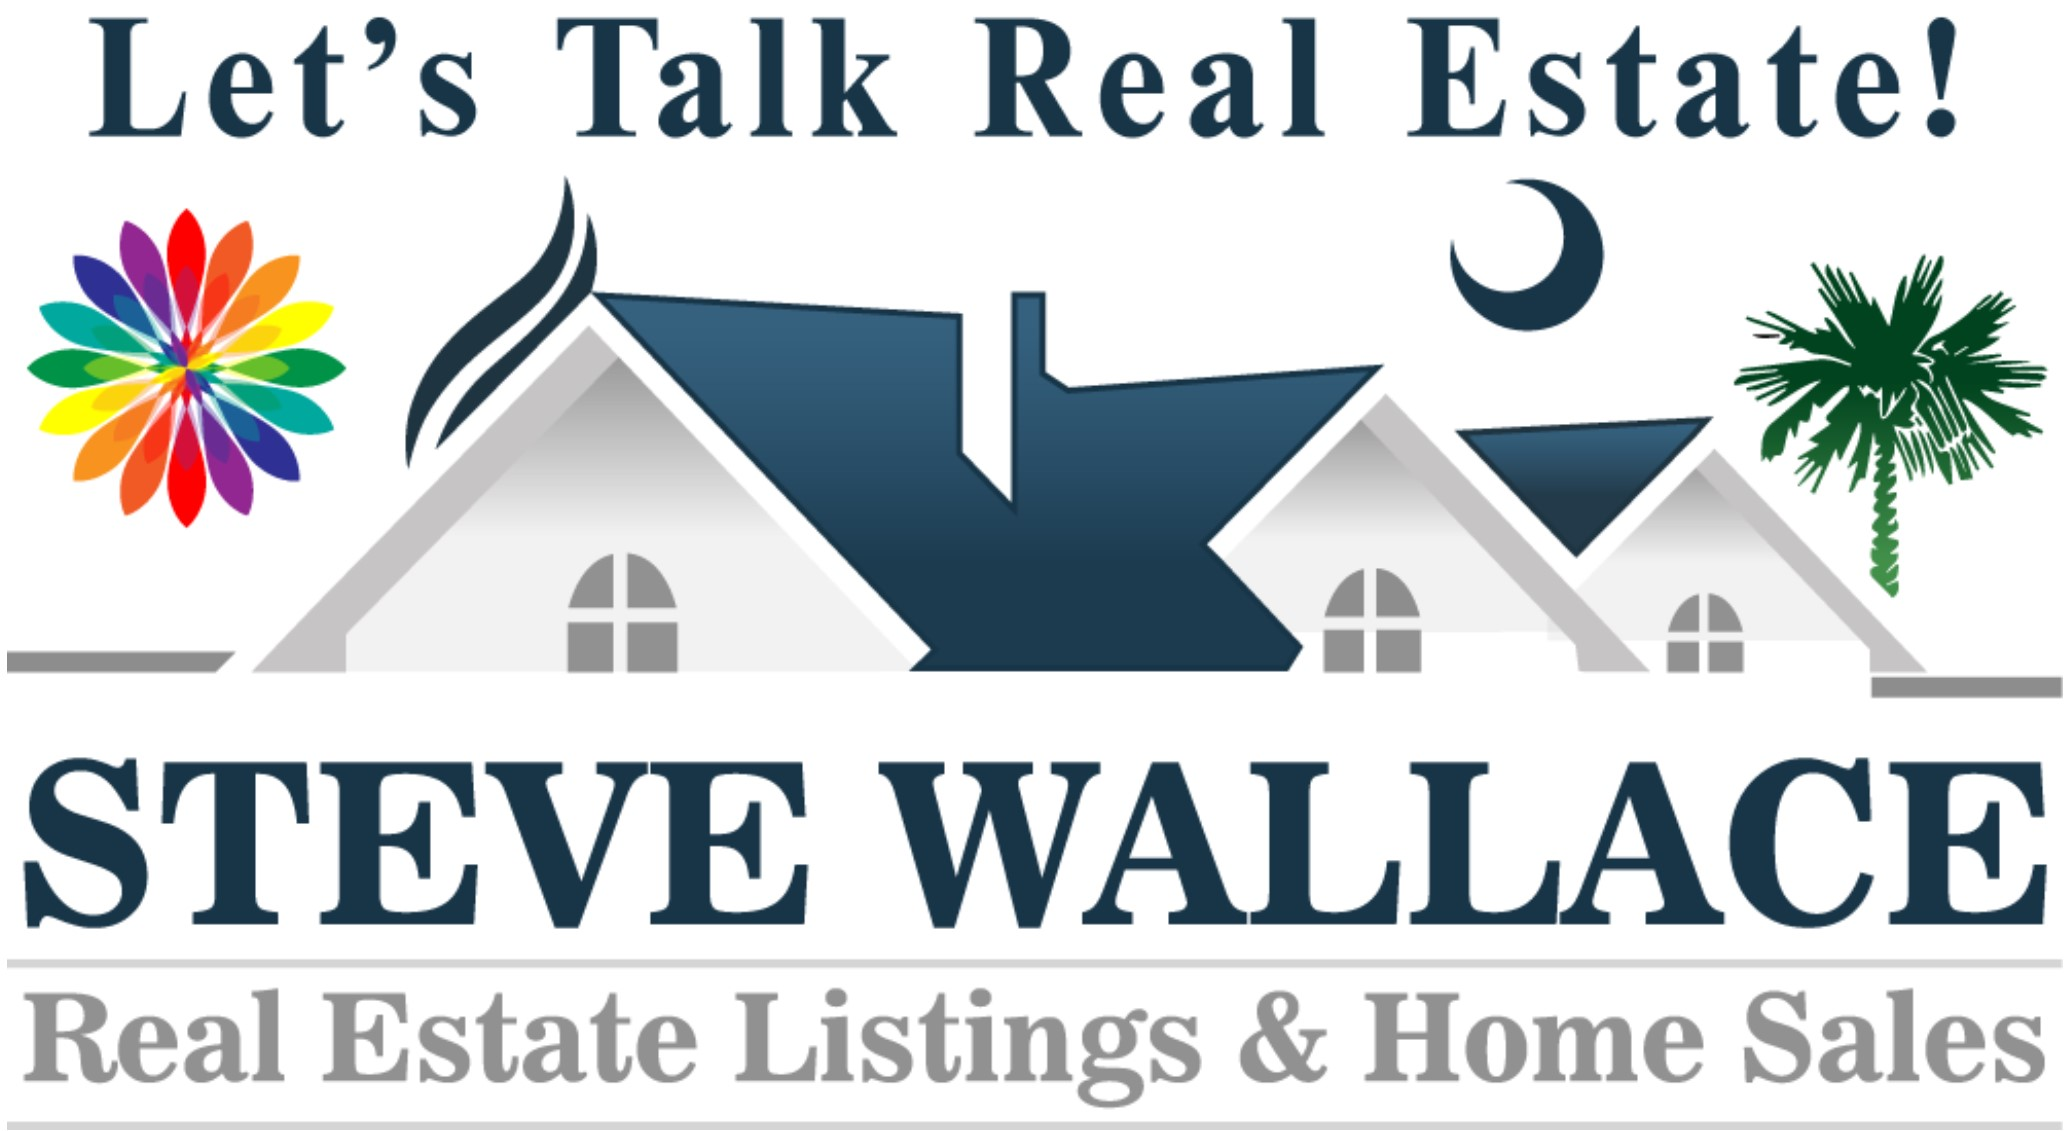 Steve Wallace Real Estate, Nearby, Realtors, Agents, Realty Service, Bluffton, SC